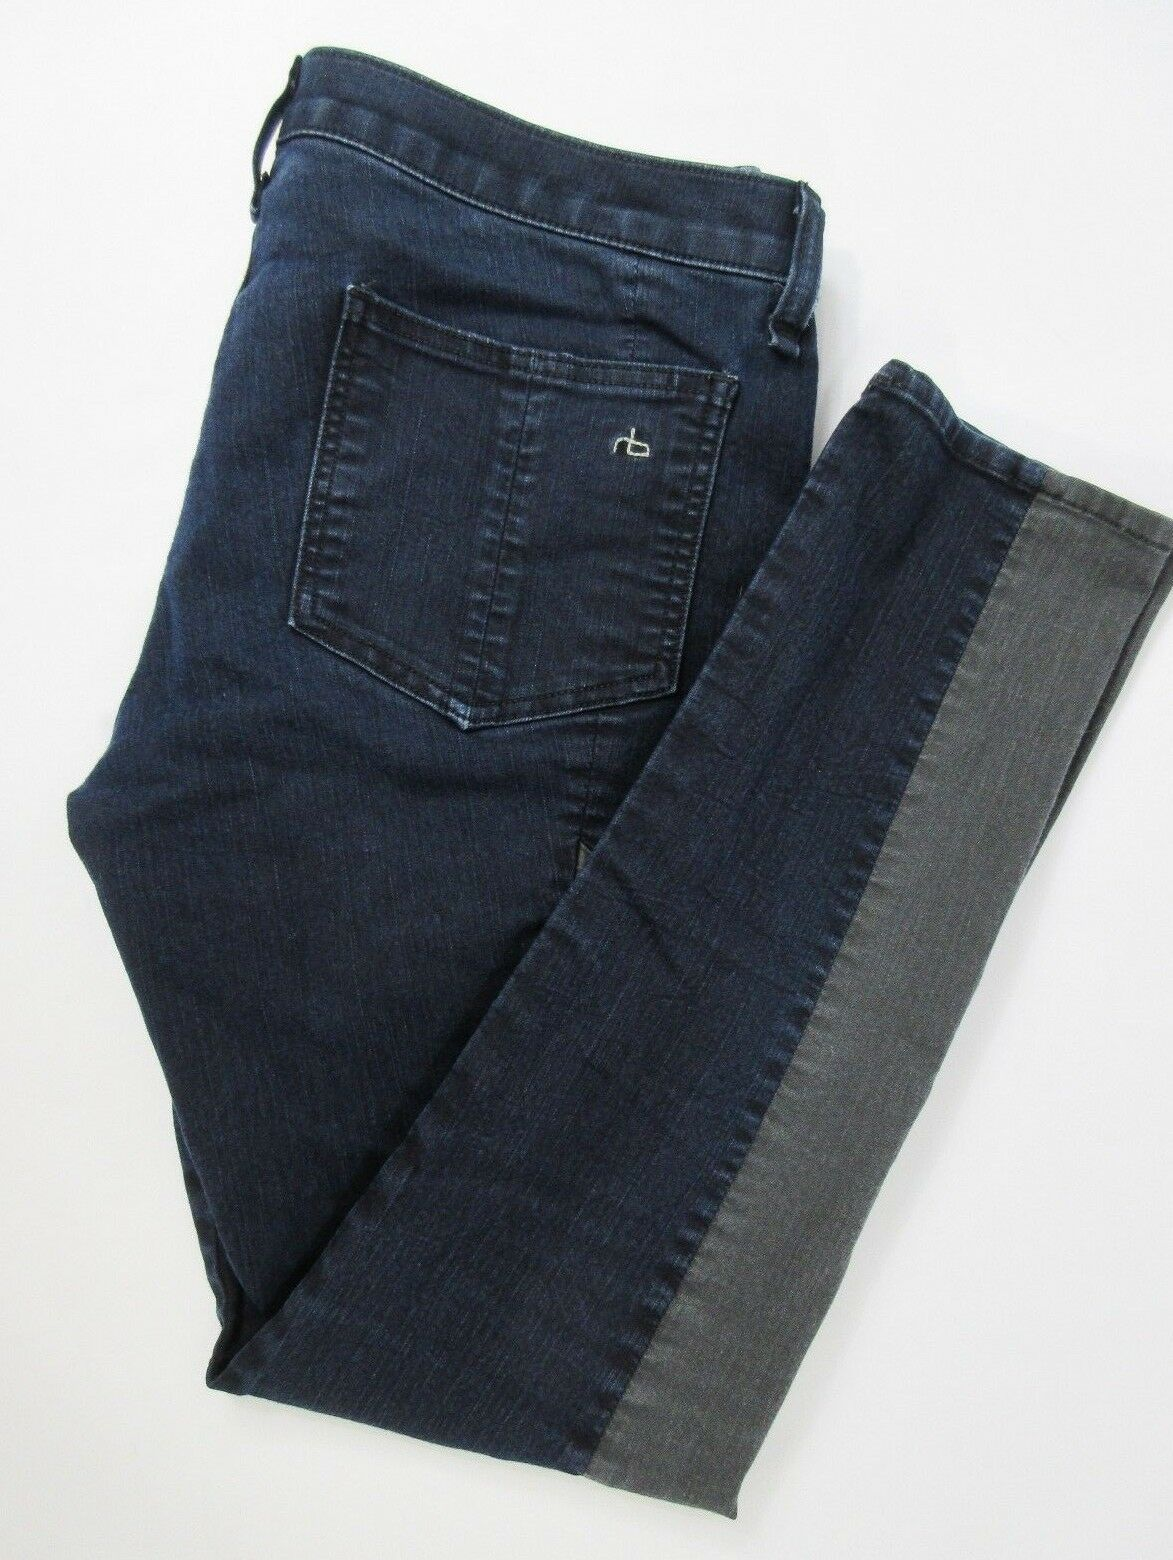 RAG & BONE The Grand Prix Midnight bluee Leather Trimmed Skinny Jeans Size 30x28